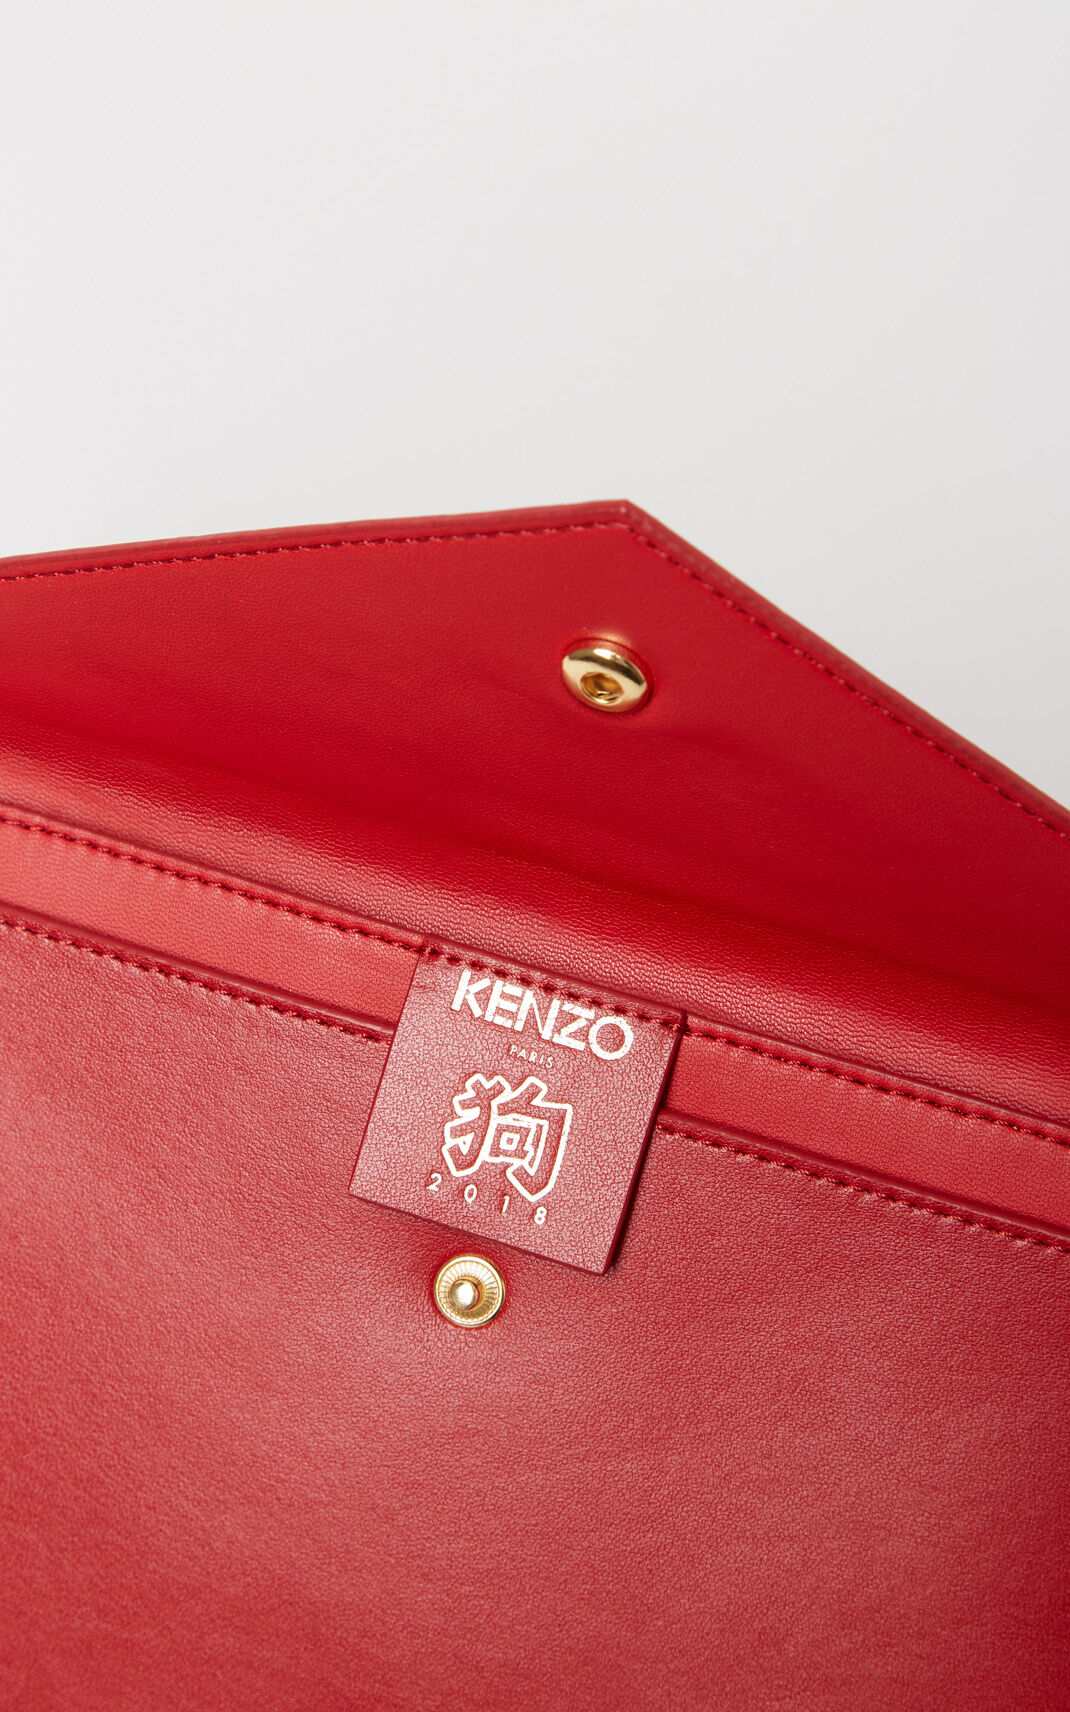 MEDIUM RED Leather A5 Clutch Bag for men KENZO